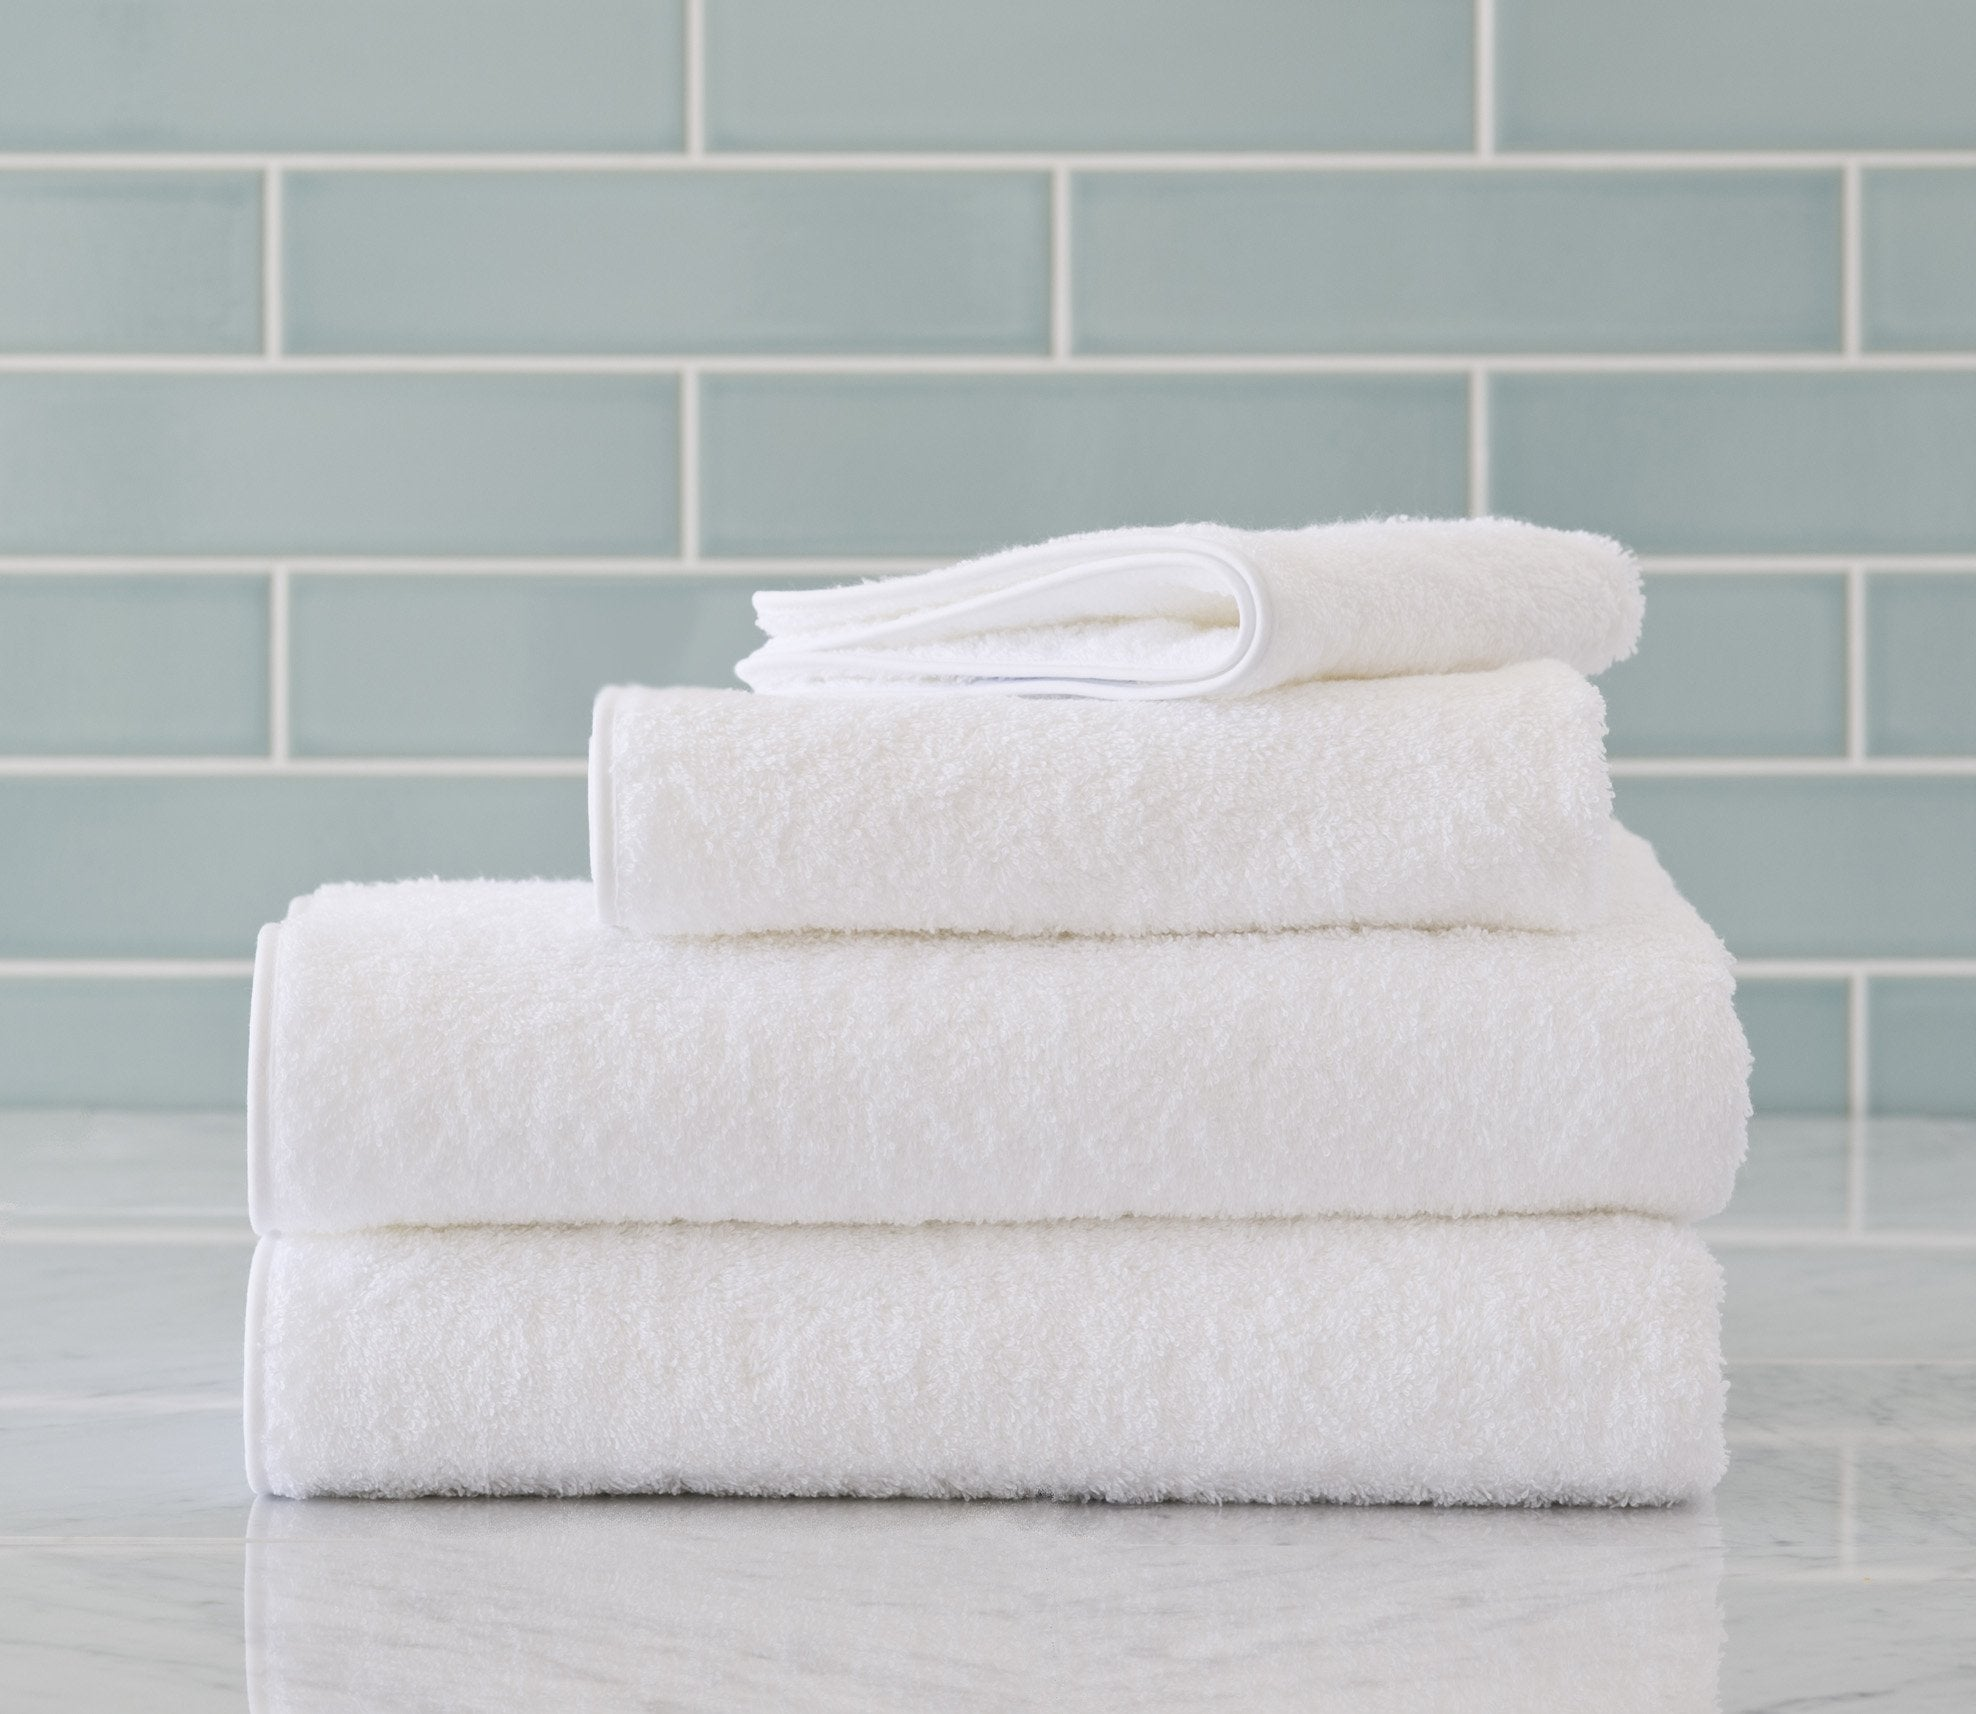 Cairo Bath Towels White Product Image 1